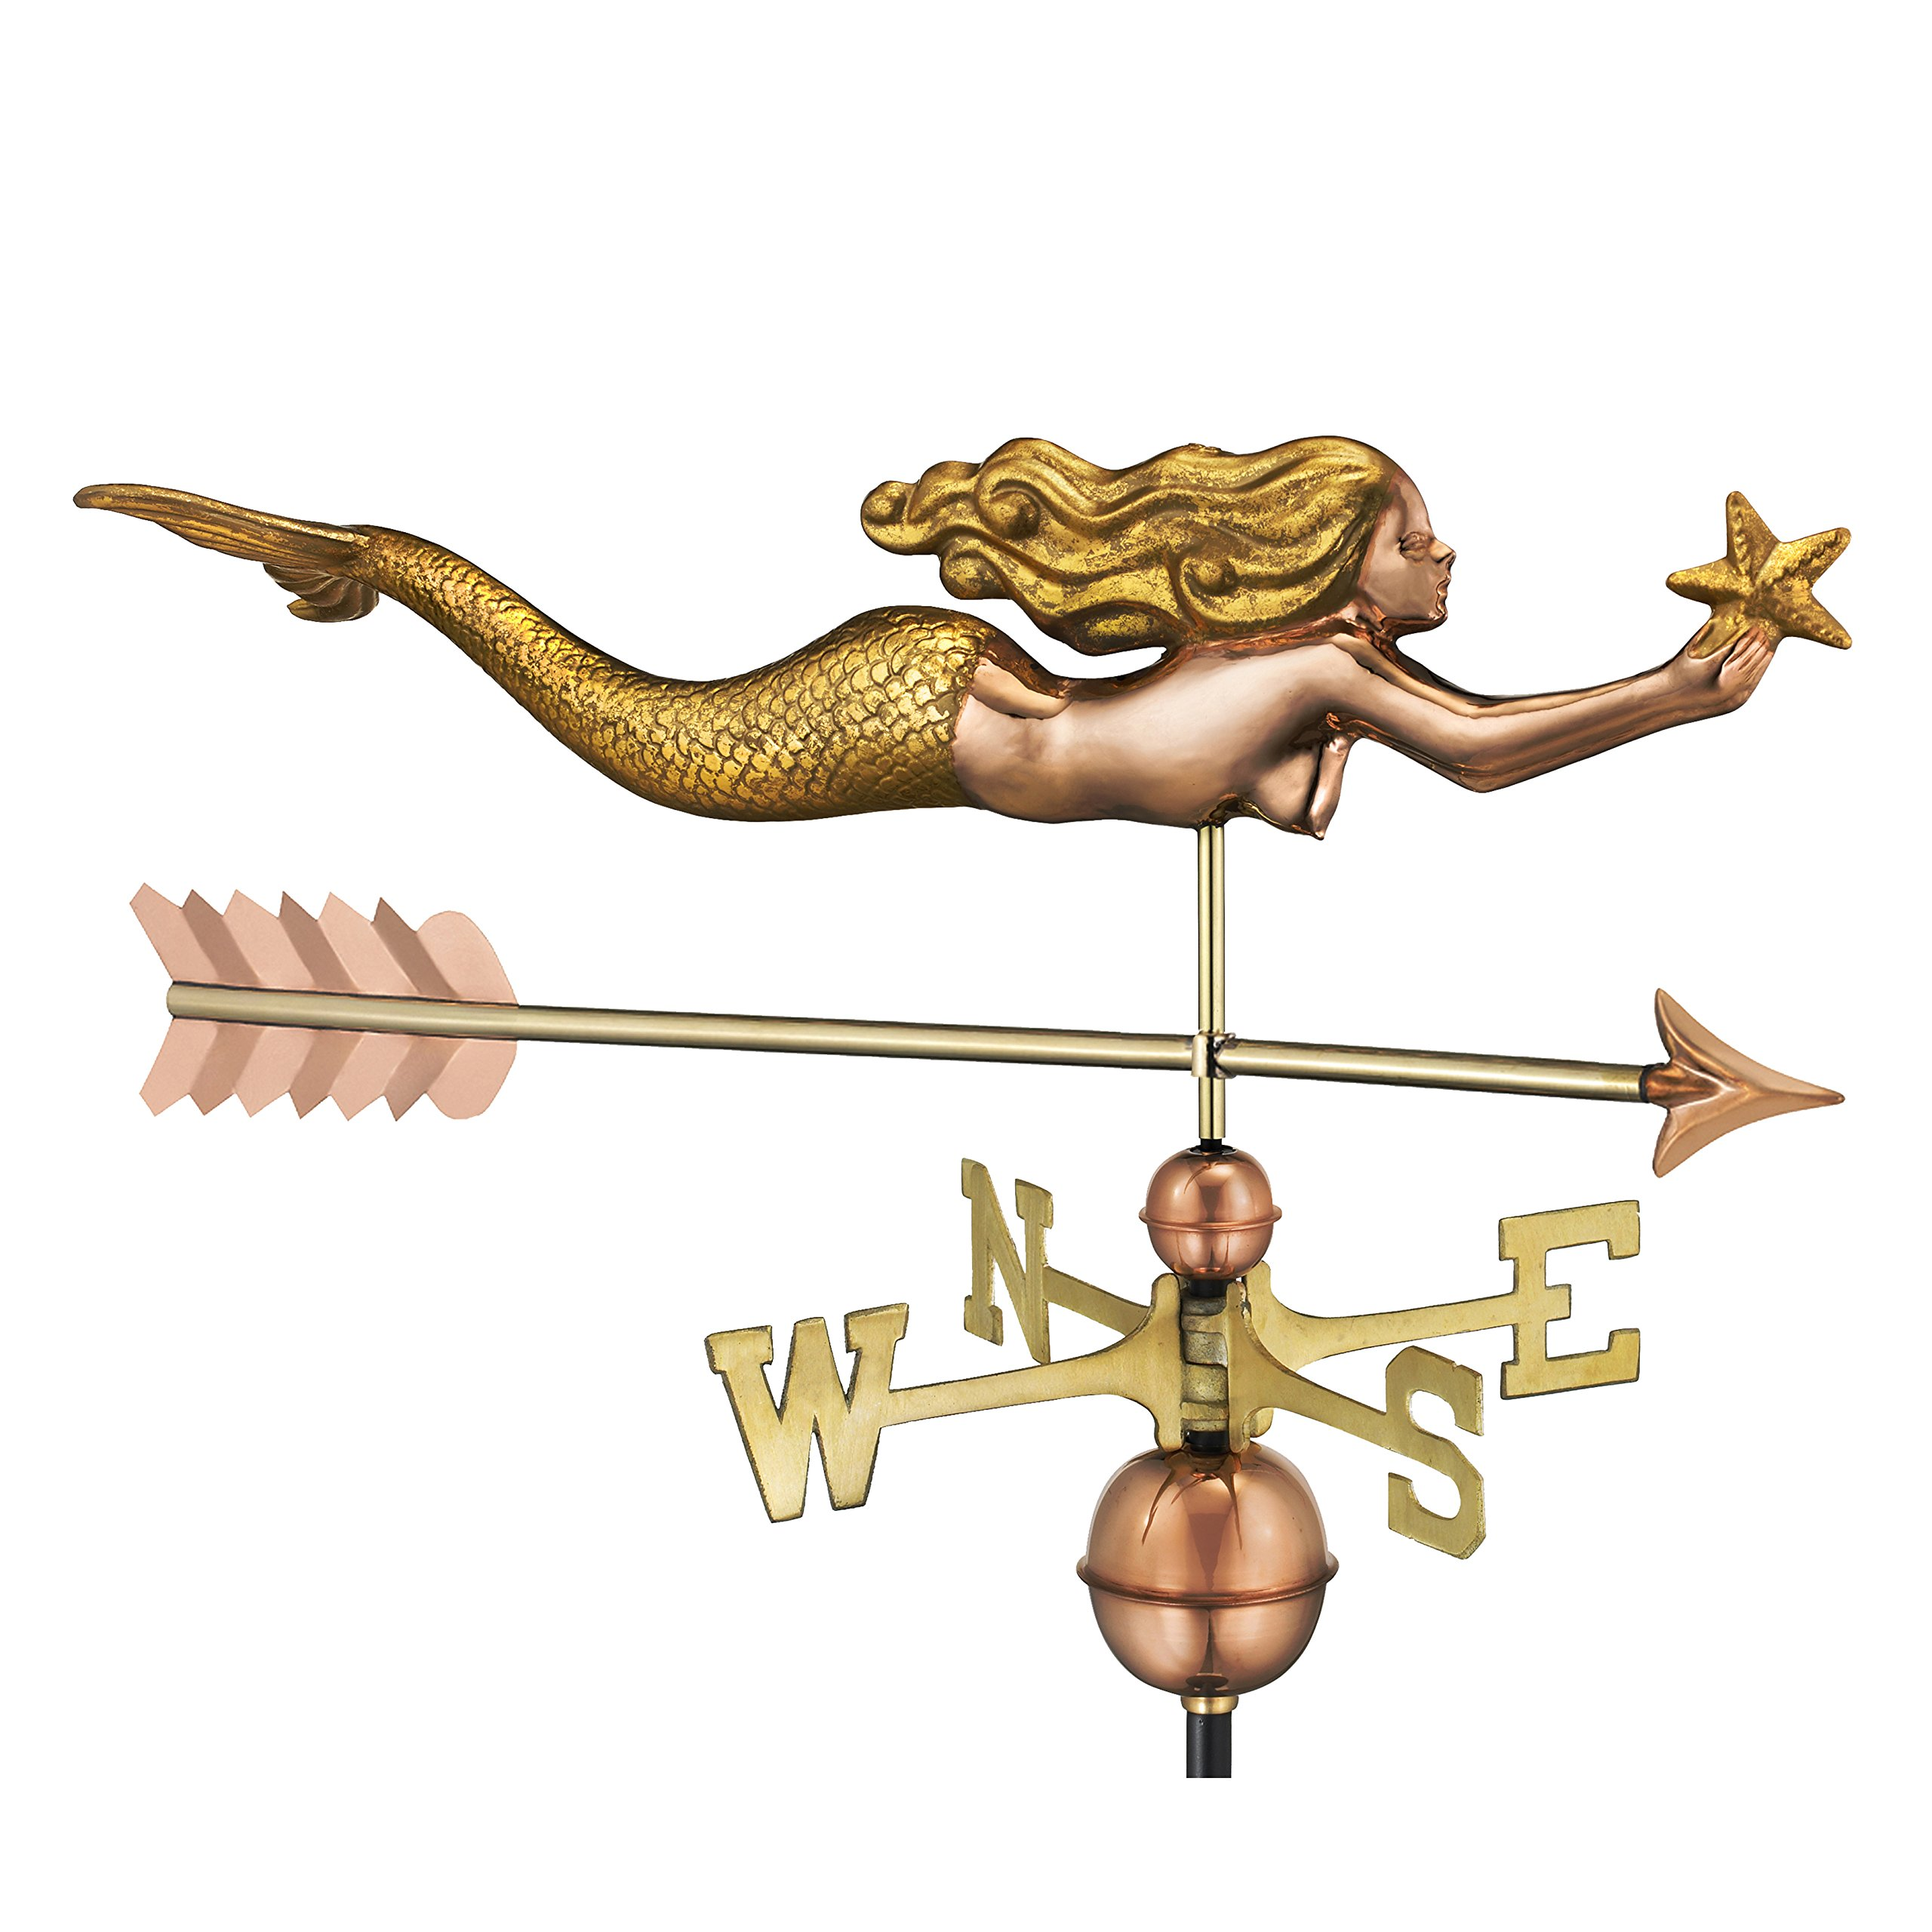 Good Directions Mermaid with Starfish and Arrow Weathervane - Pure Copper with Golden Leaf Finish